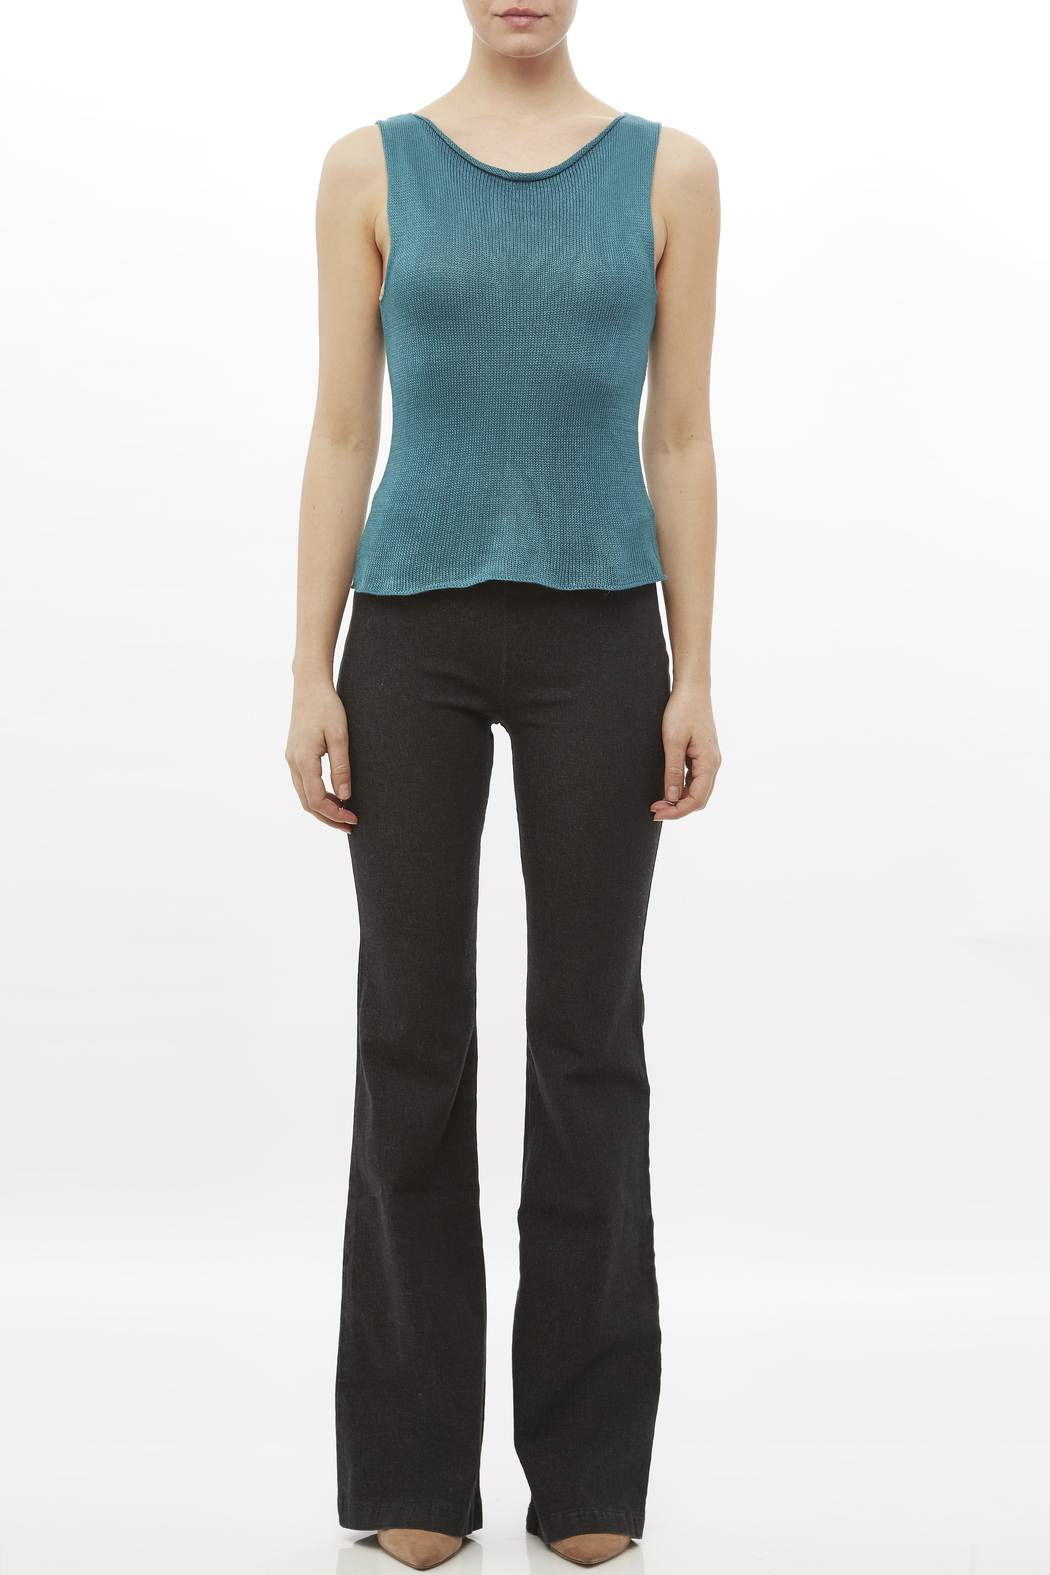 DC KNITS Sleeveless Bamboo Top - Front Full Image